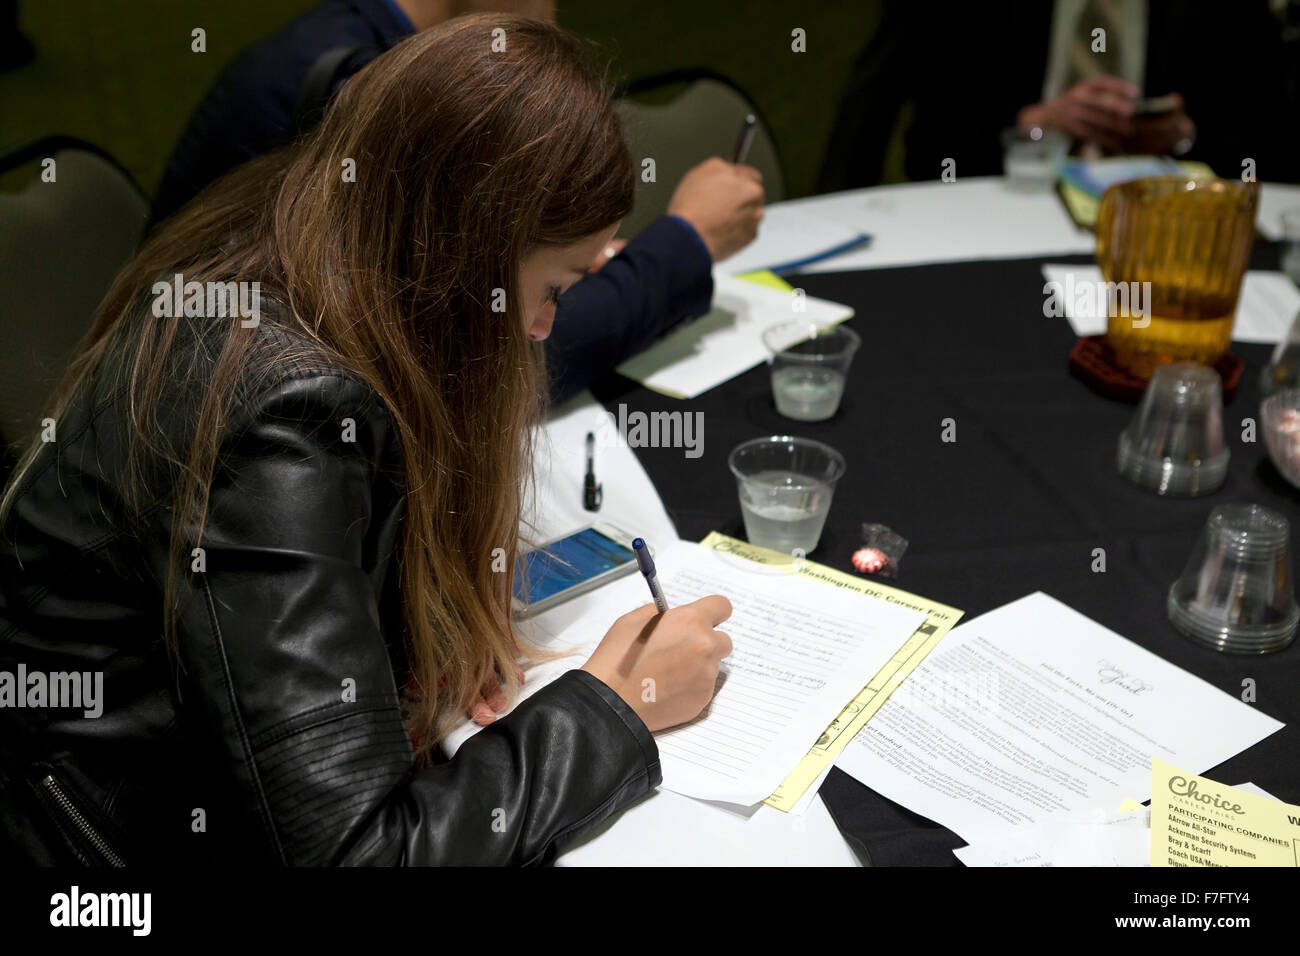 Young woman filling out an application at job recruiting fair - Arlington, Virginia USA - Stock Image